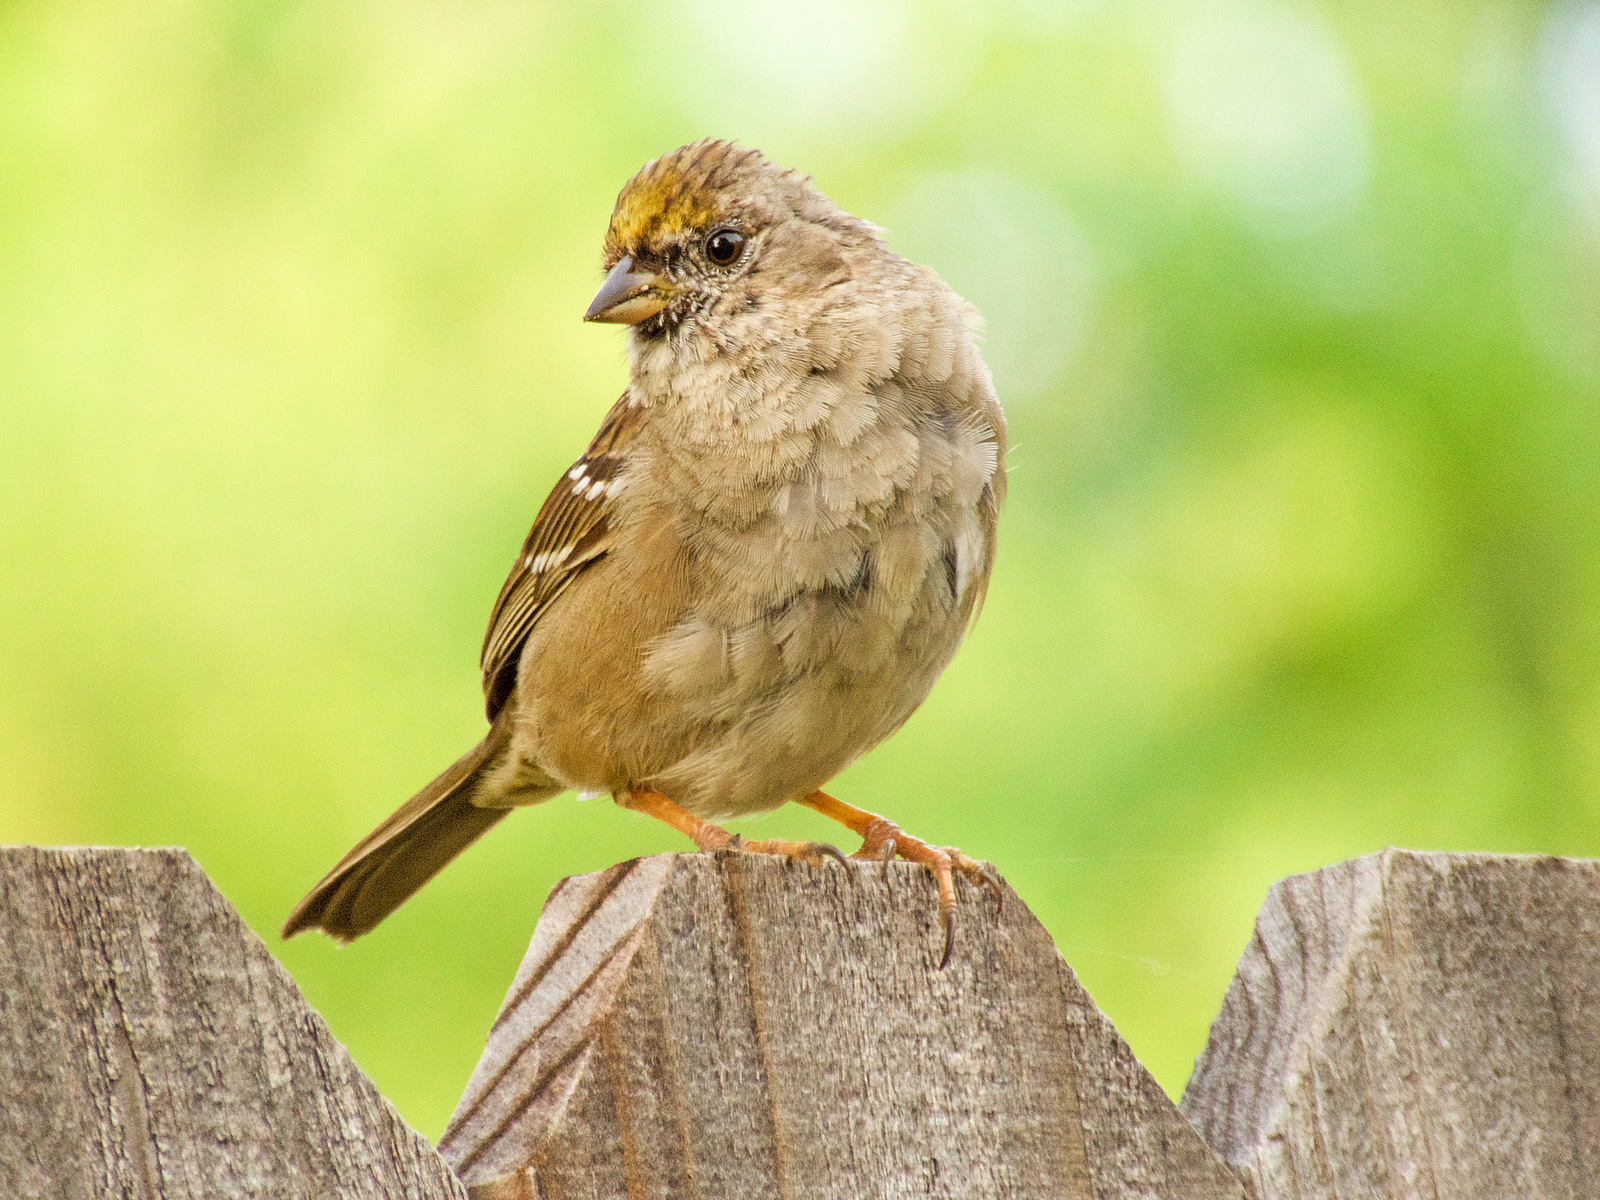 SX60_golden-crowned_sparrow_1600x1200.jpg